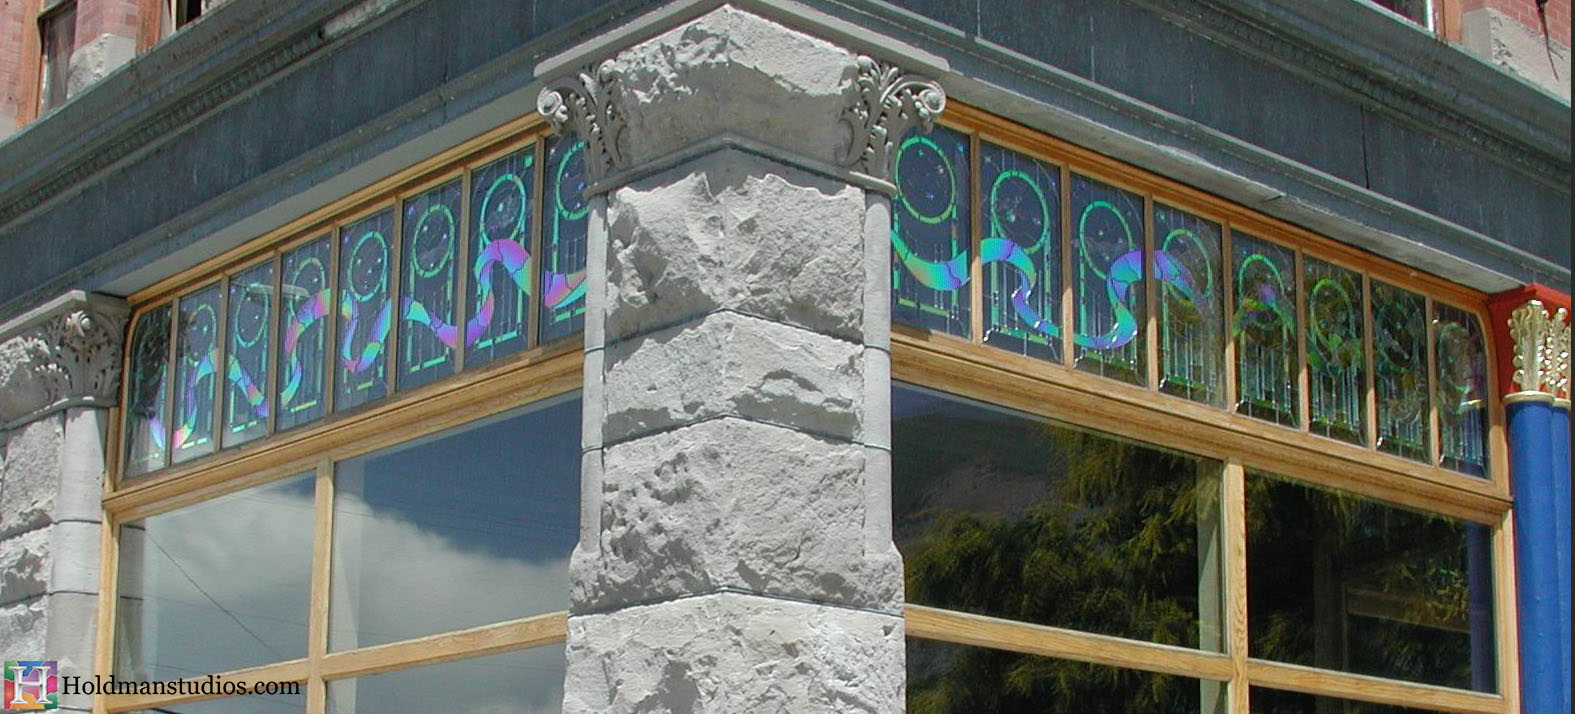 Stained Glass_Magelbys resturant 2.jpg